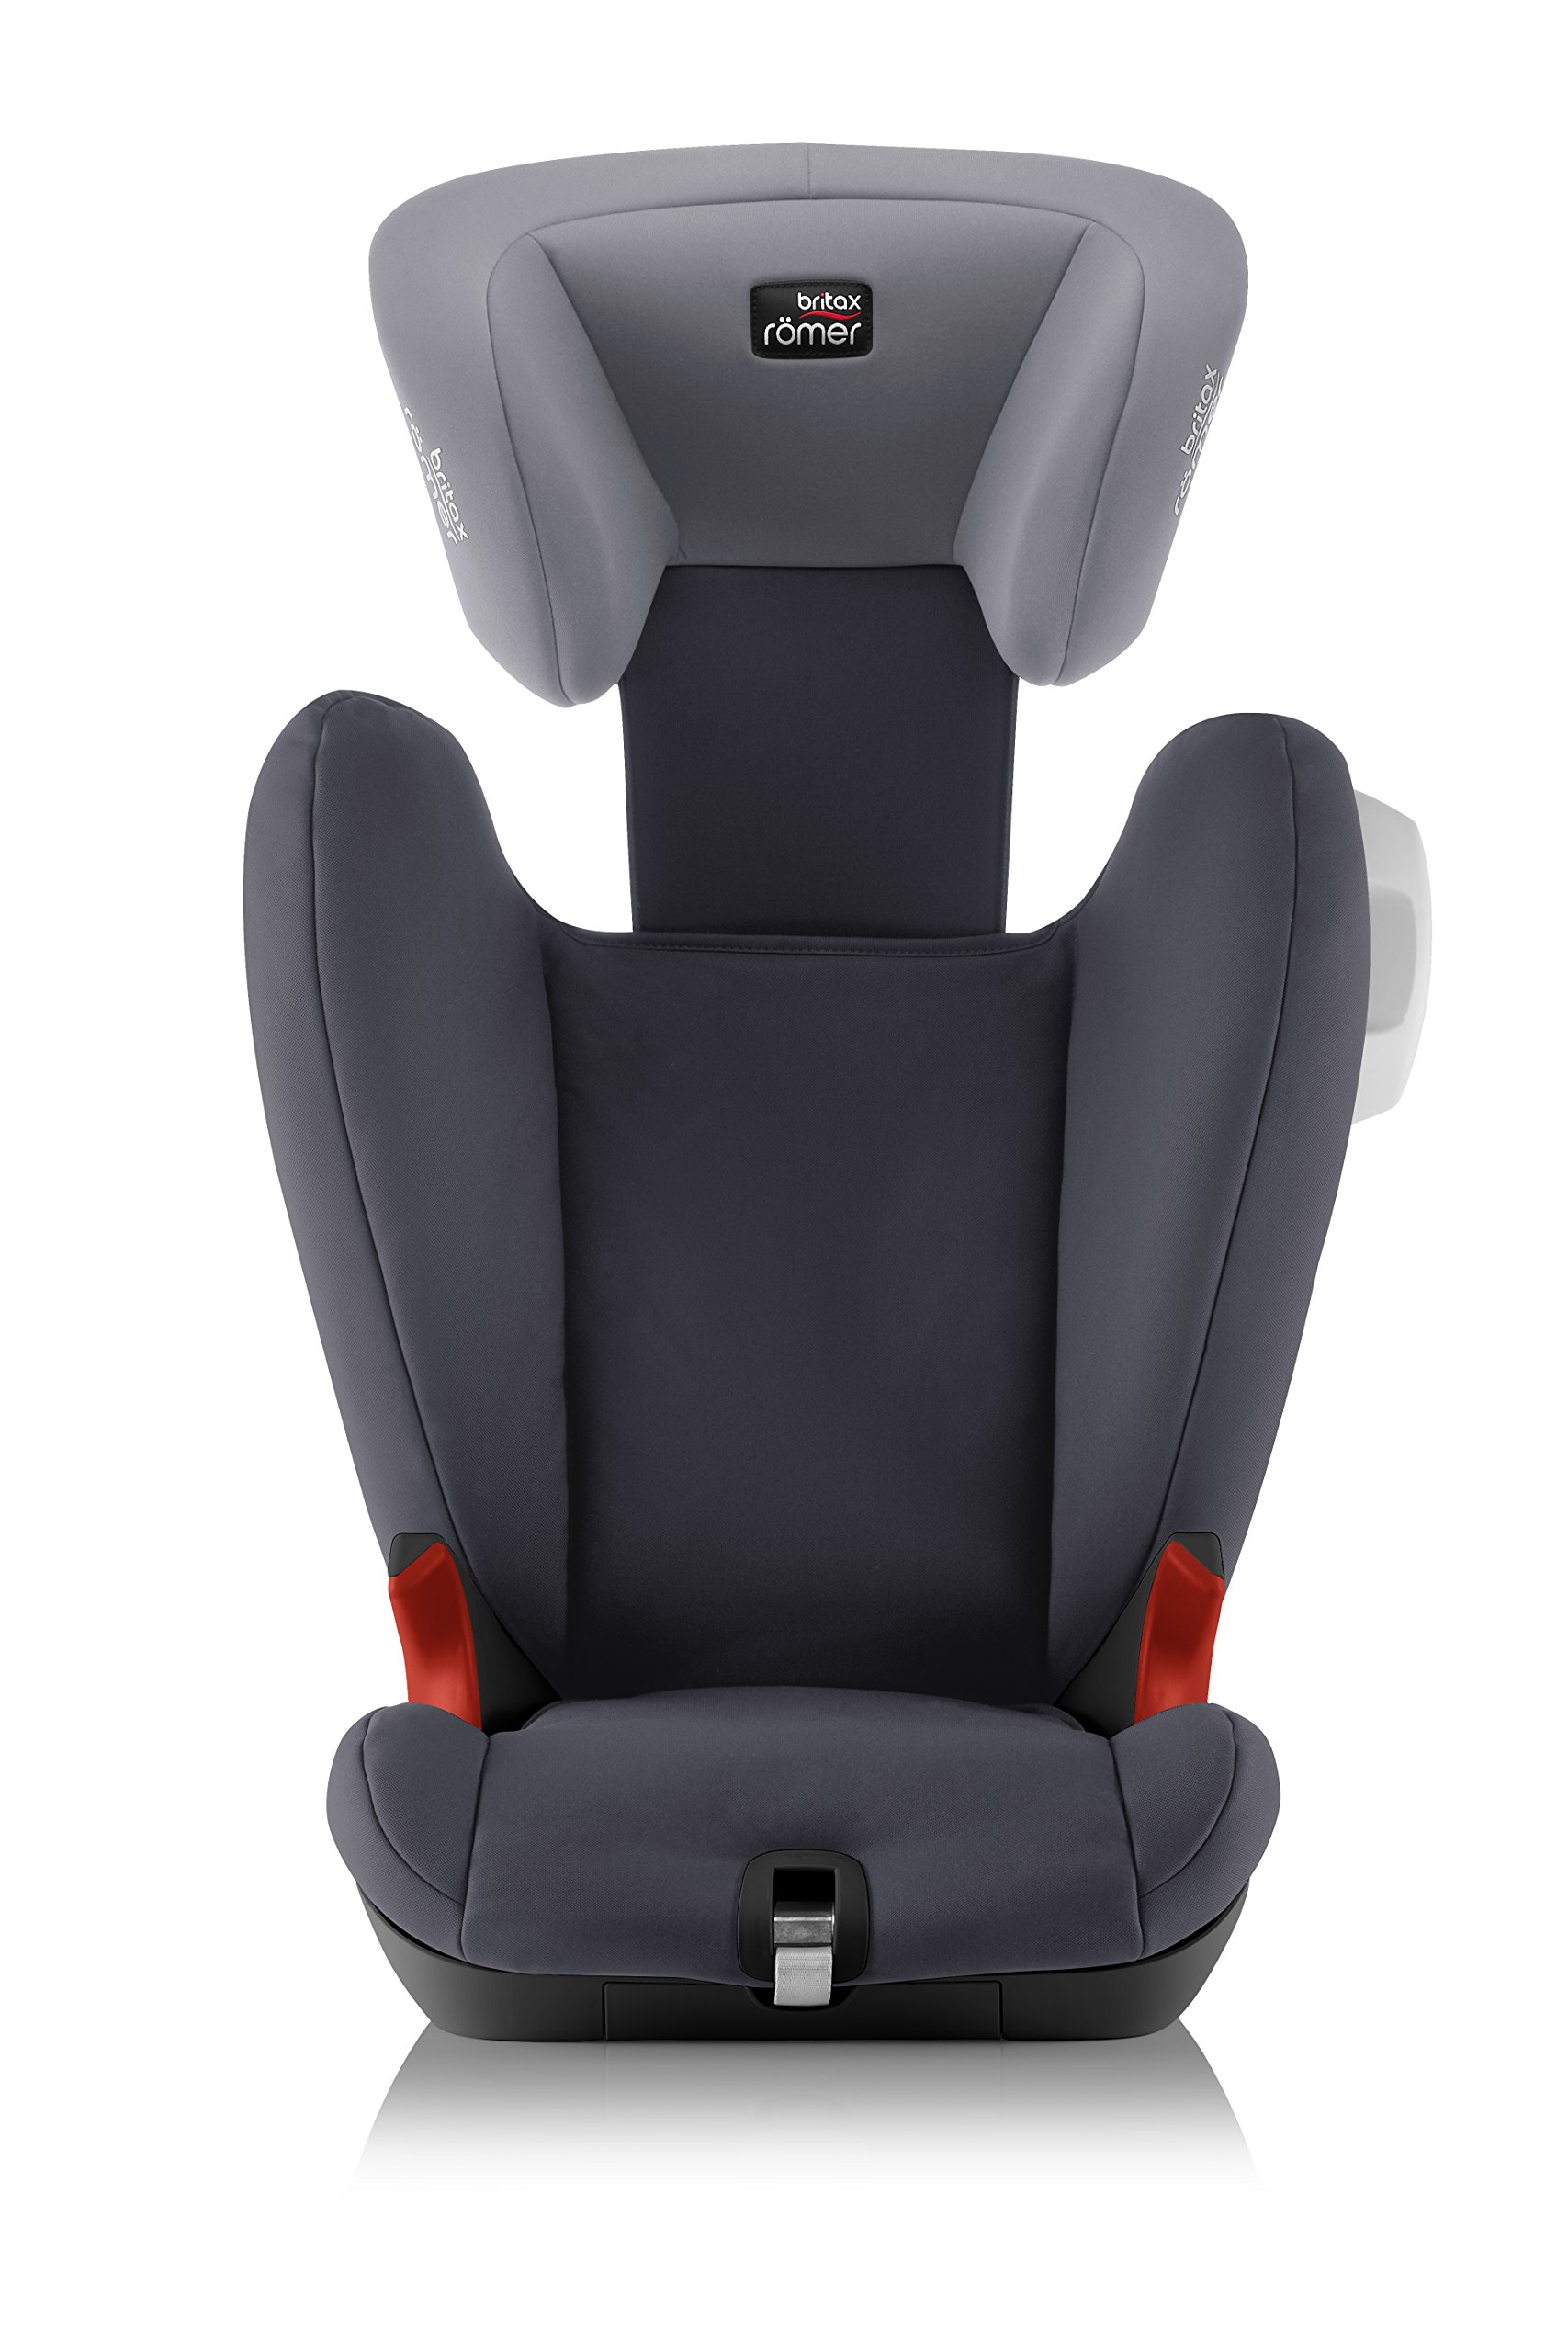 Britax Römer KIDFIX SL SICT BLACK SERIES Group 2-3 (15-36kg) Car Seat - Storm Grey Britax Römer Side impact protection - deep, softly padded side wings and sict technology, removable to use only on the side closest to the door Simple installation - soft-latch isofit system Misuse limiting design - intuitively positioned seat belt guides 6